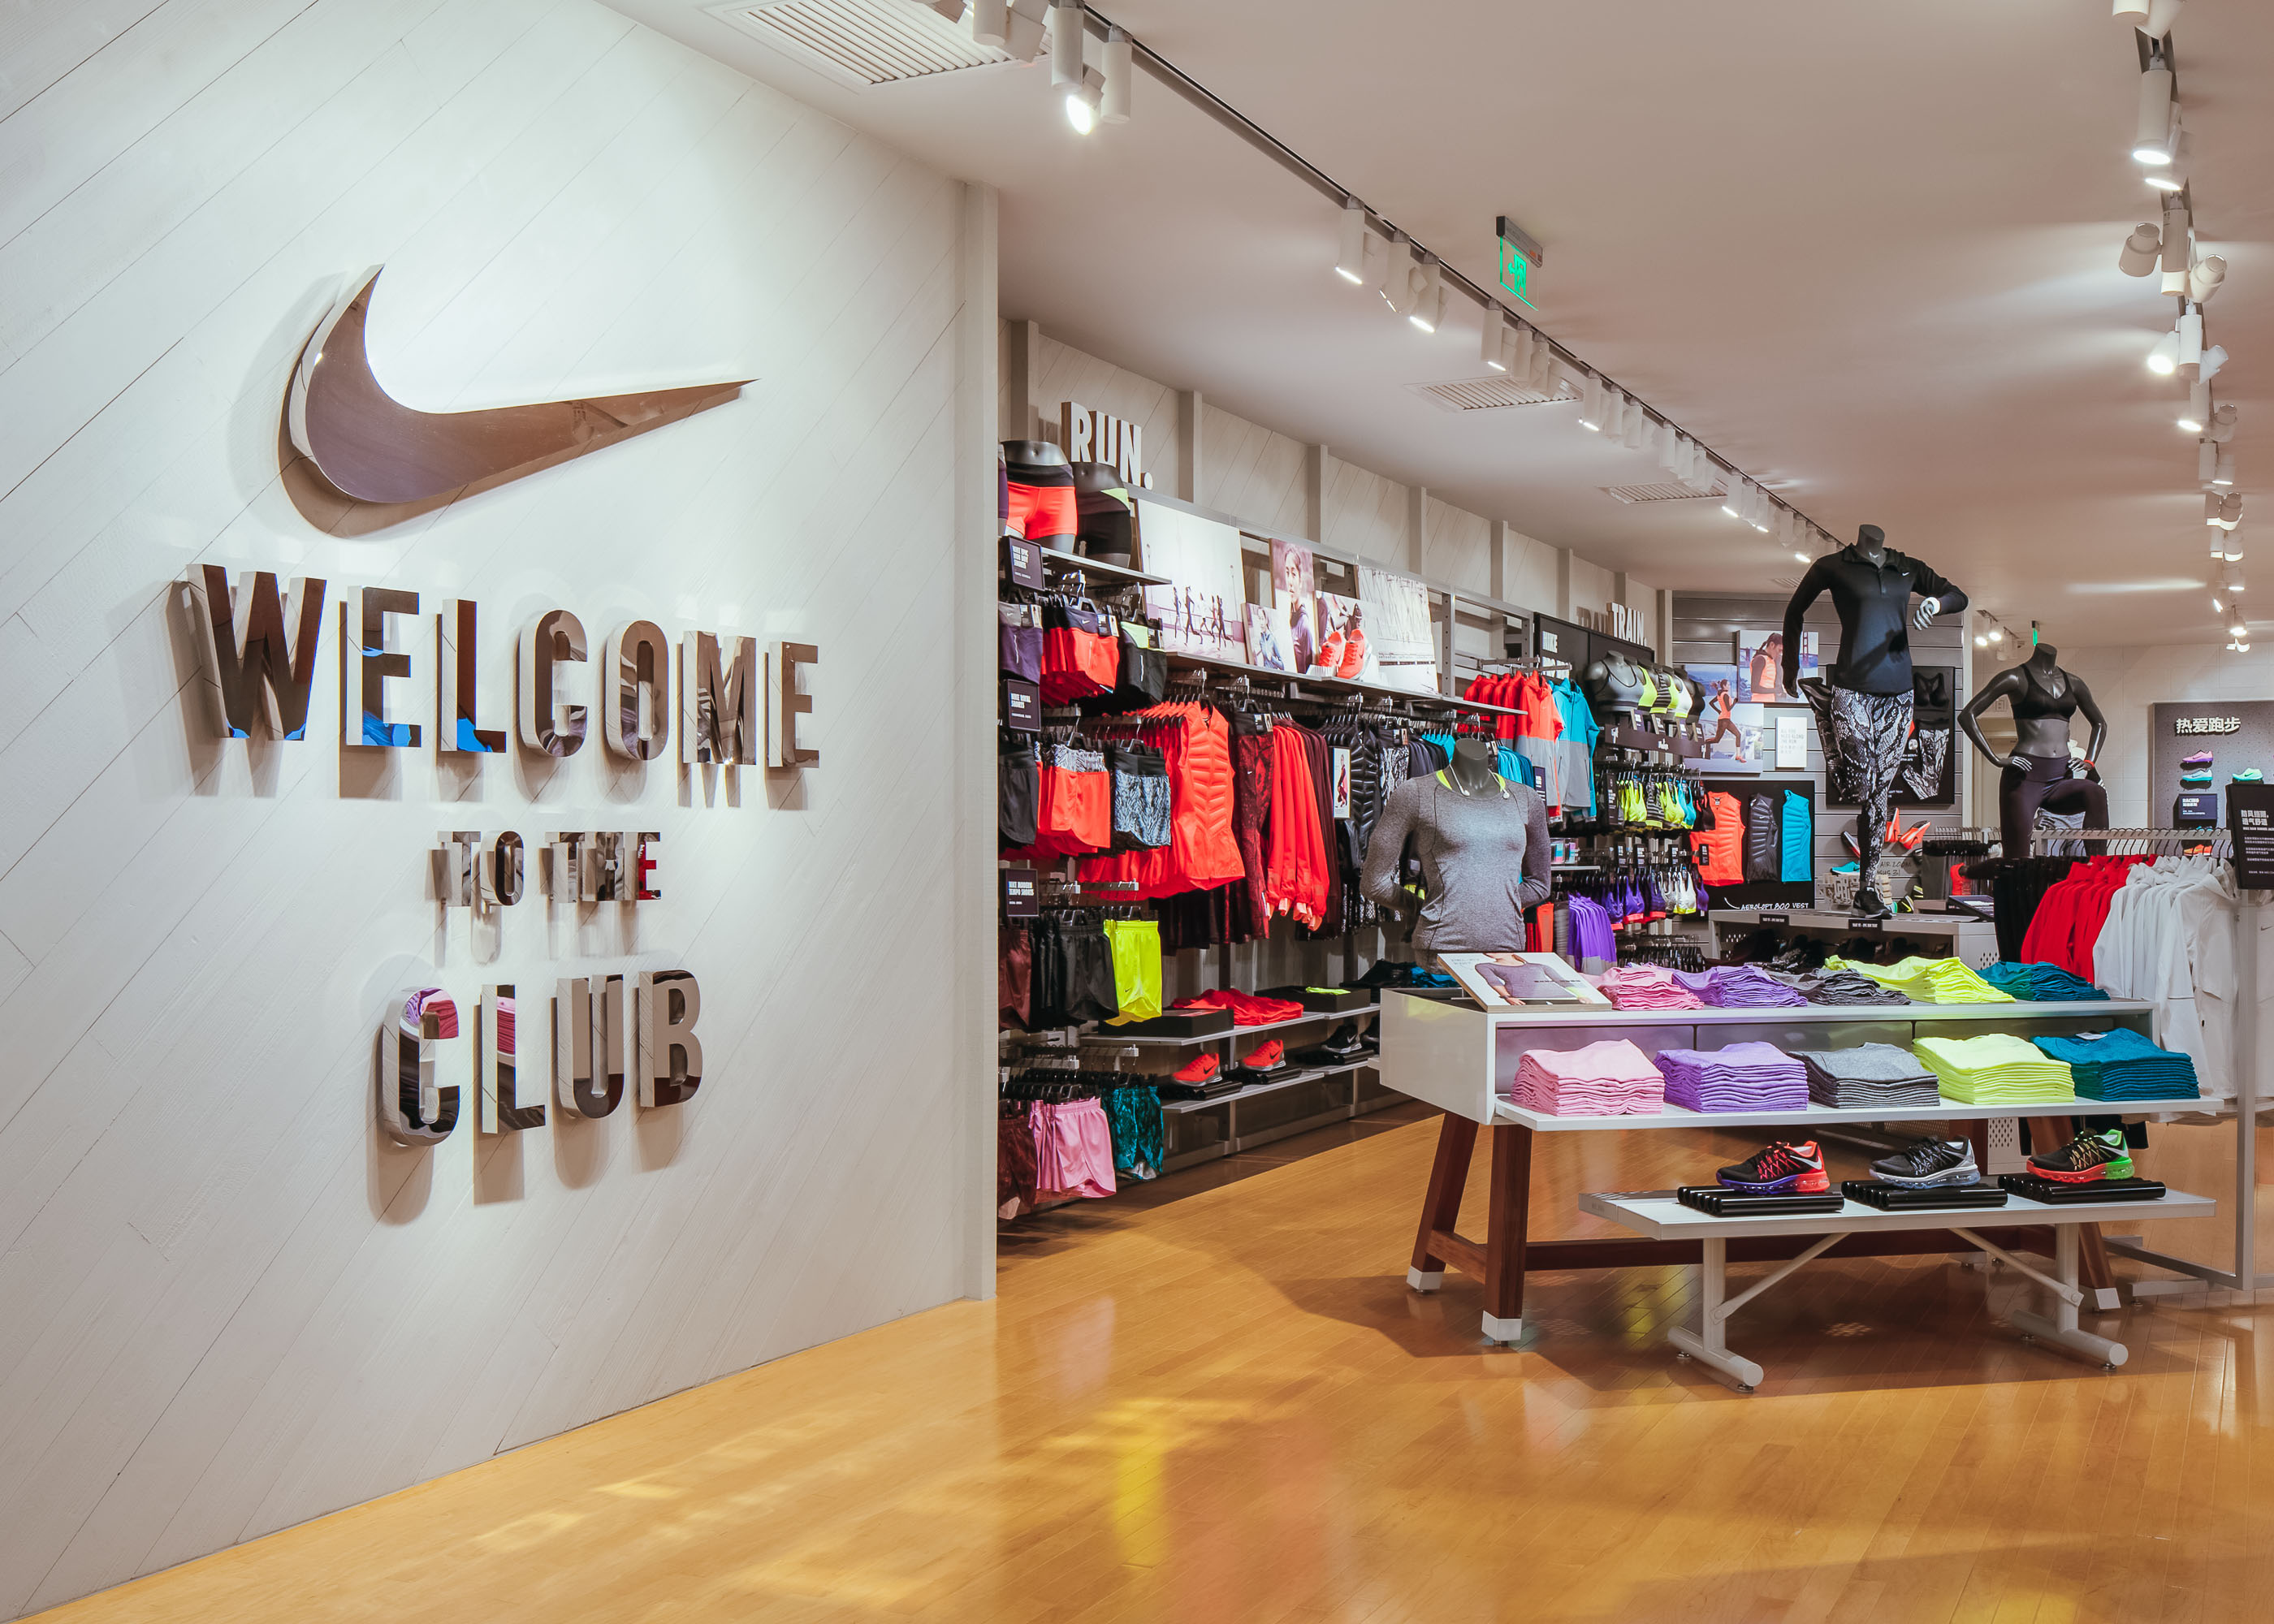 nike women s only store with premium on site sports experience opens in shanghai nike news. Black Bedroom Furniture Sets. Home Design Ideas